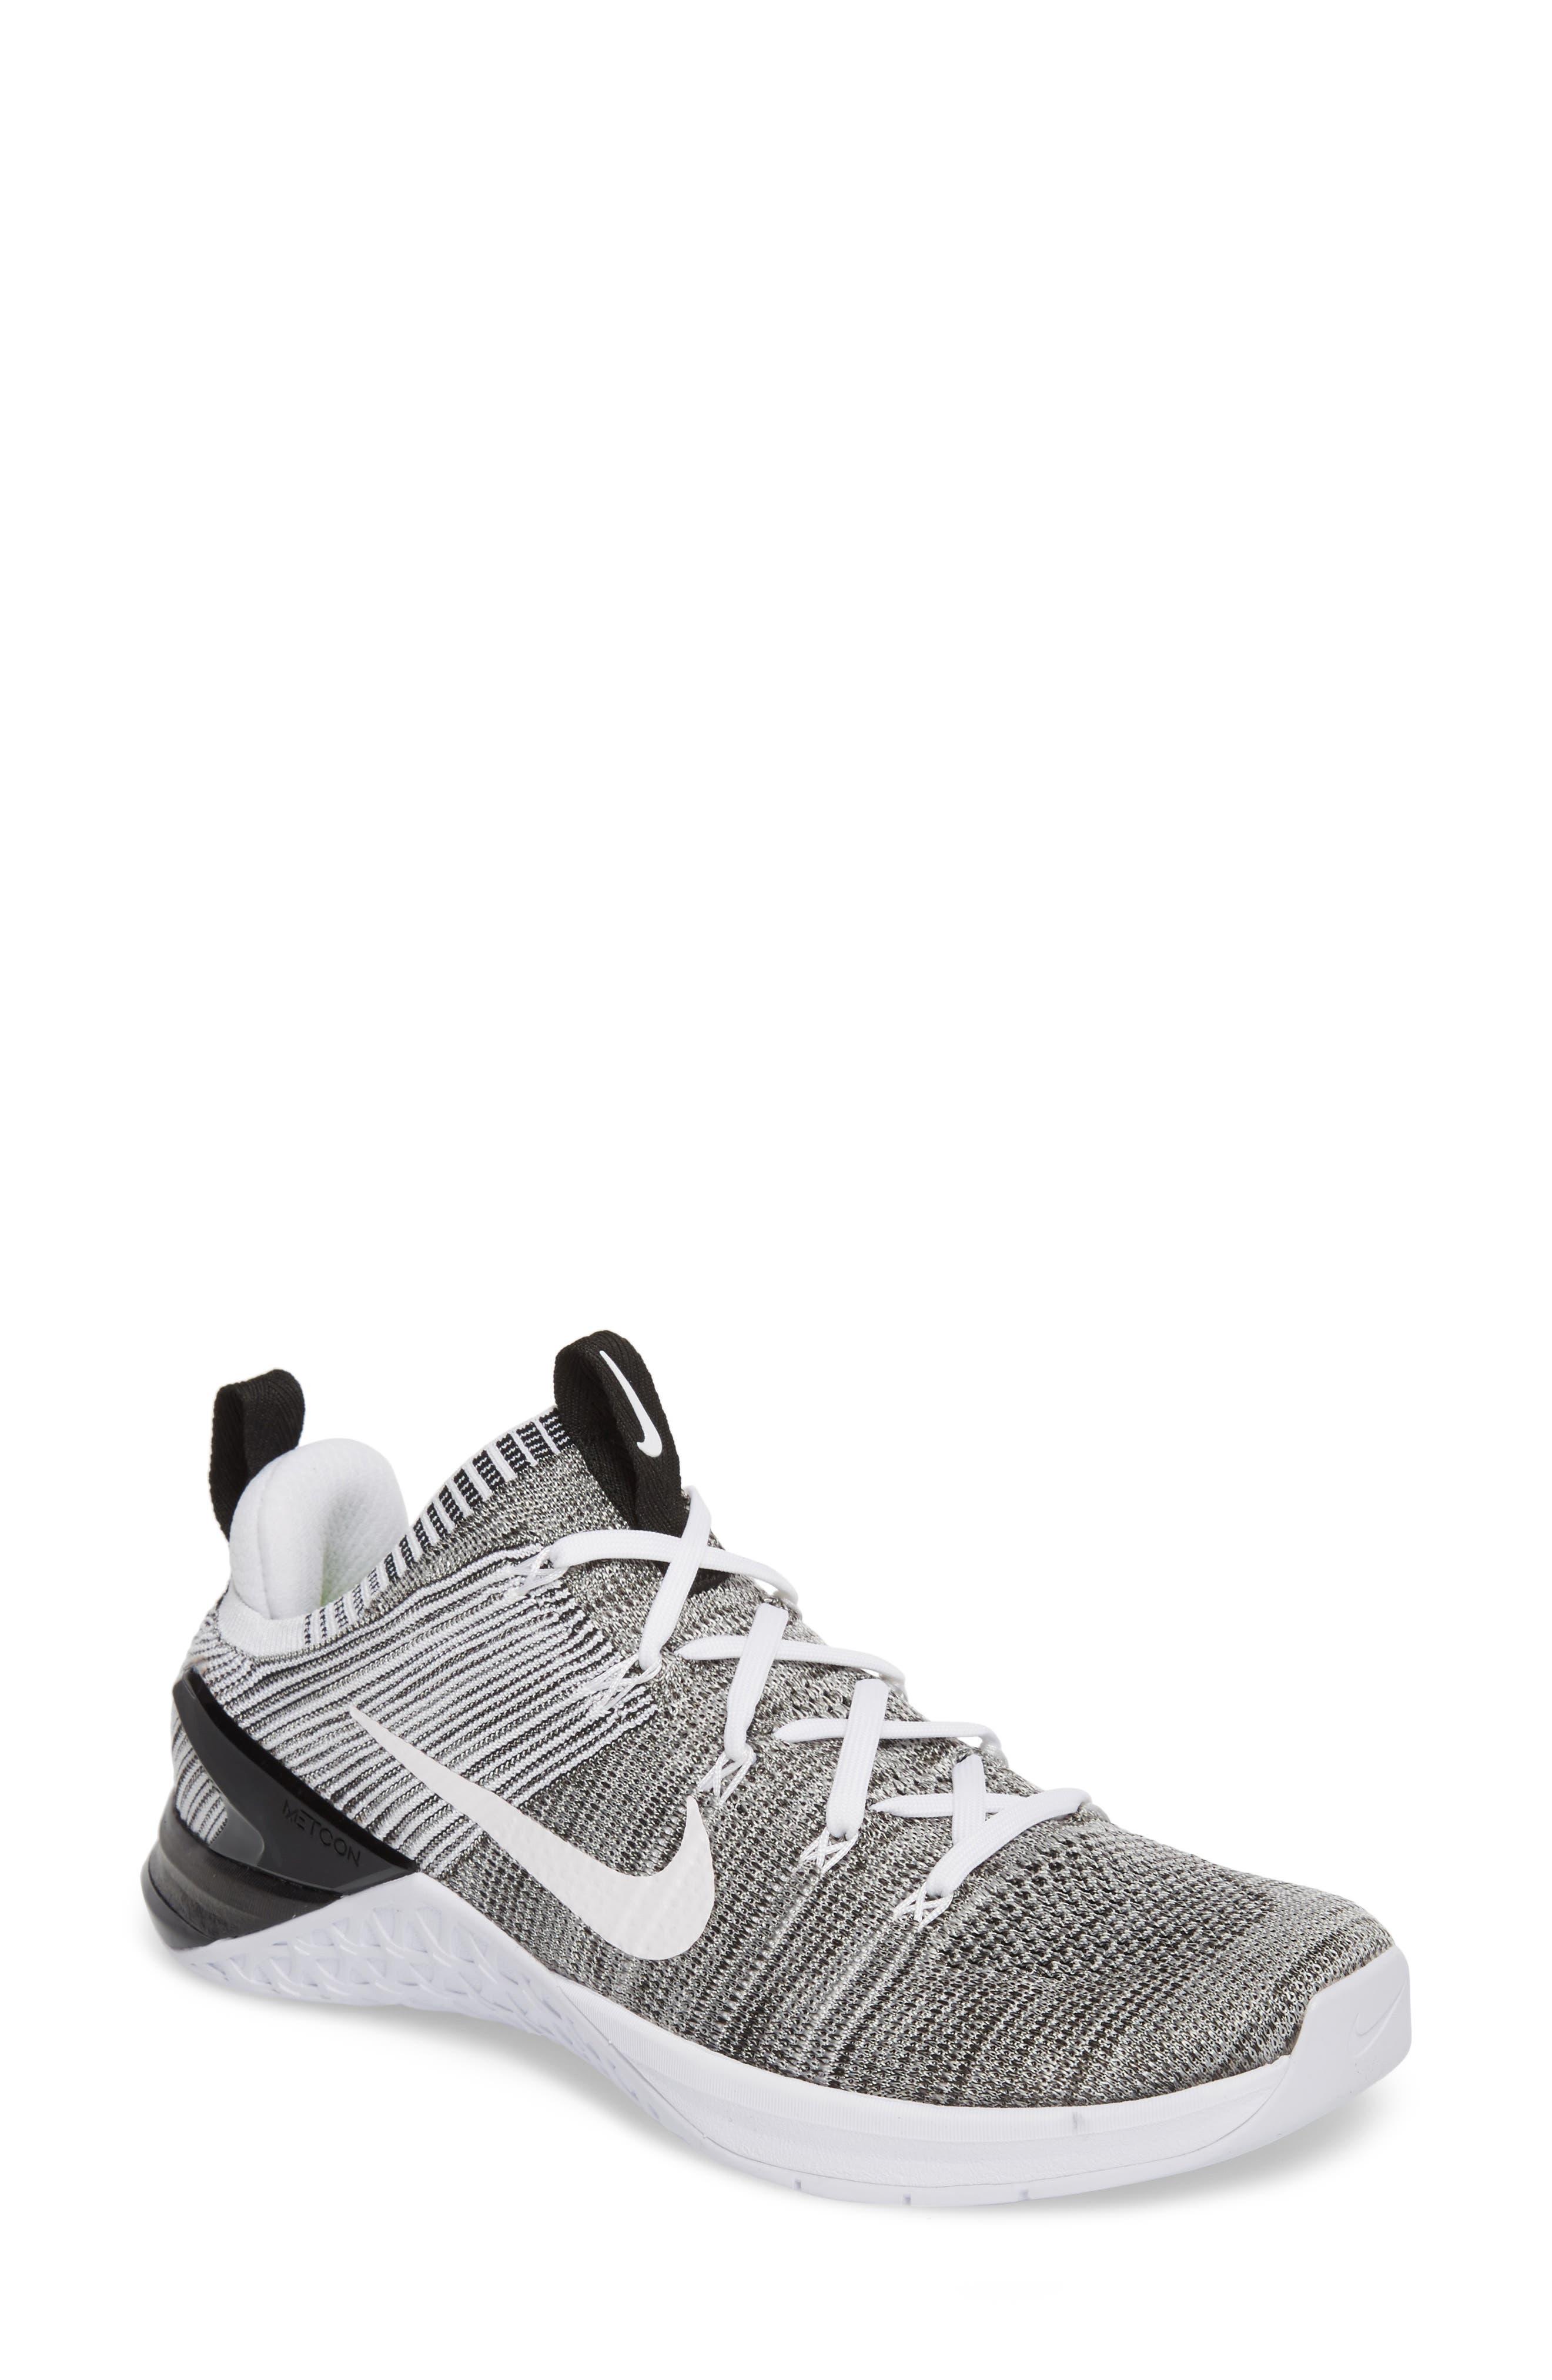 Metcon DSX Flyknit 2 Training Shoe,                             Main thumbnail 5, color,